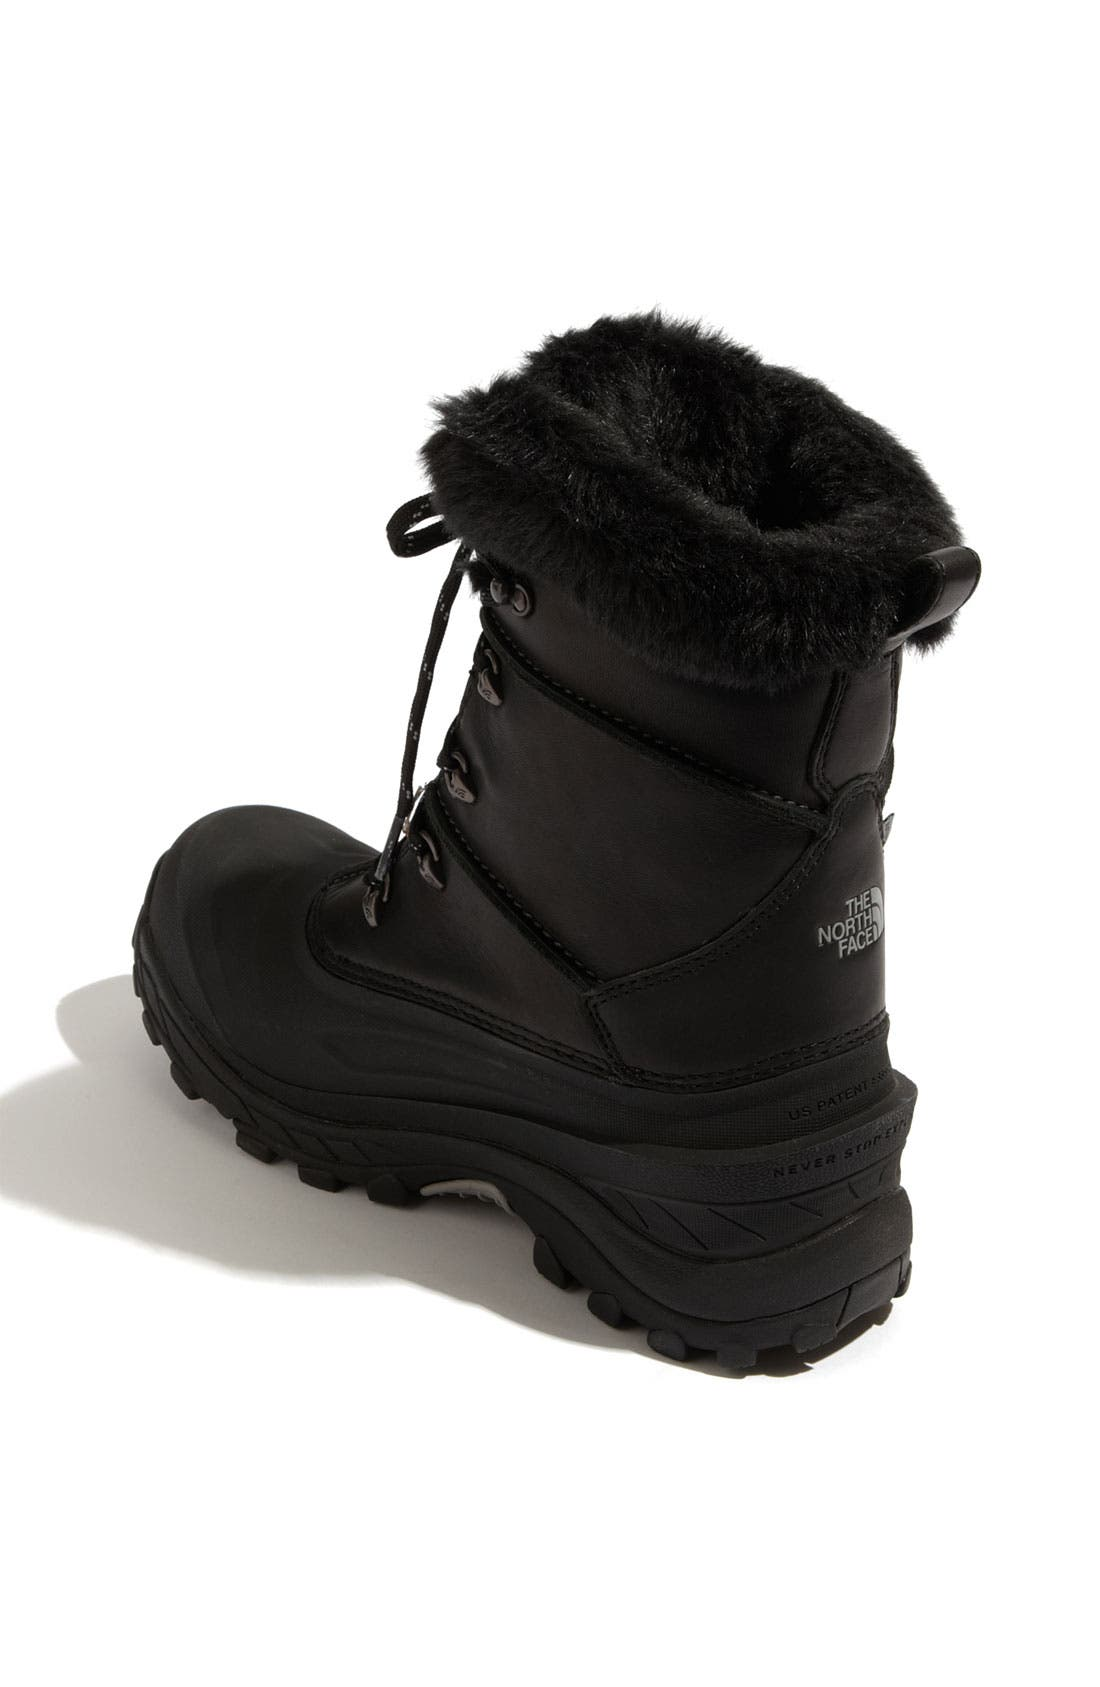 Alternate Image 2  - The North Face 'McMurdo II' Boot